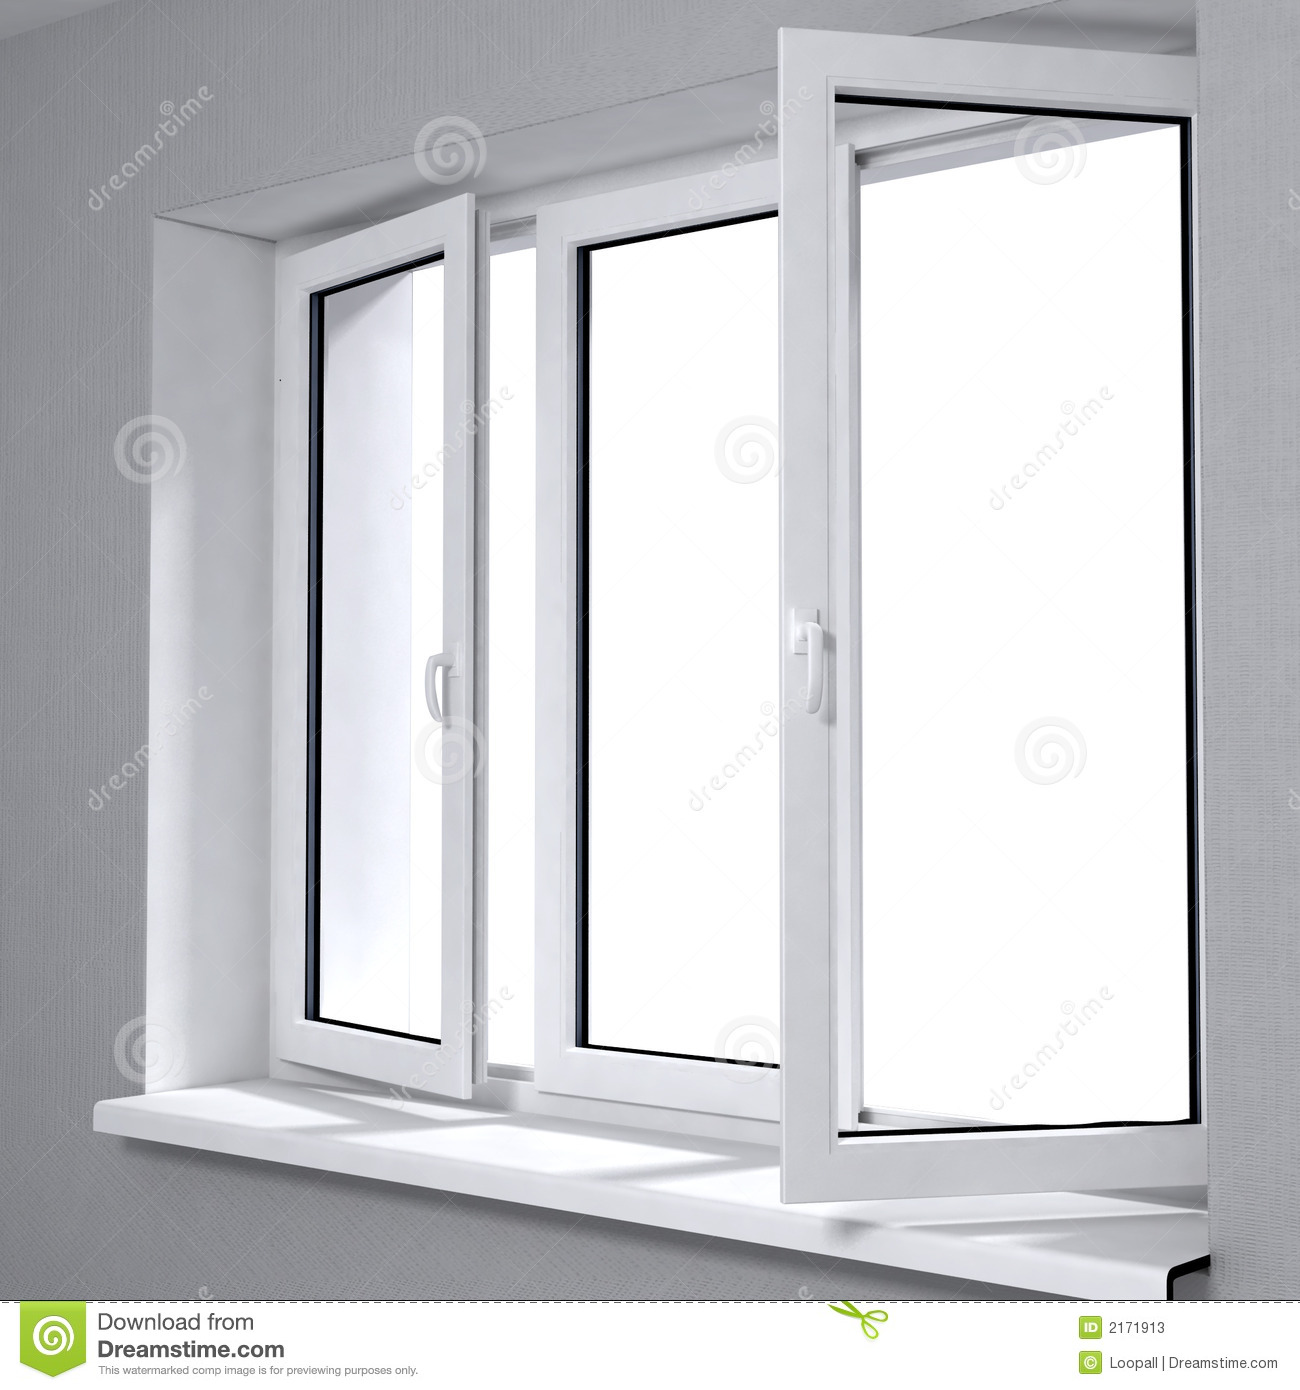 new plastic window stock image image of frame dreaming